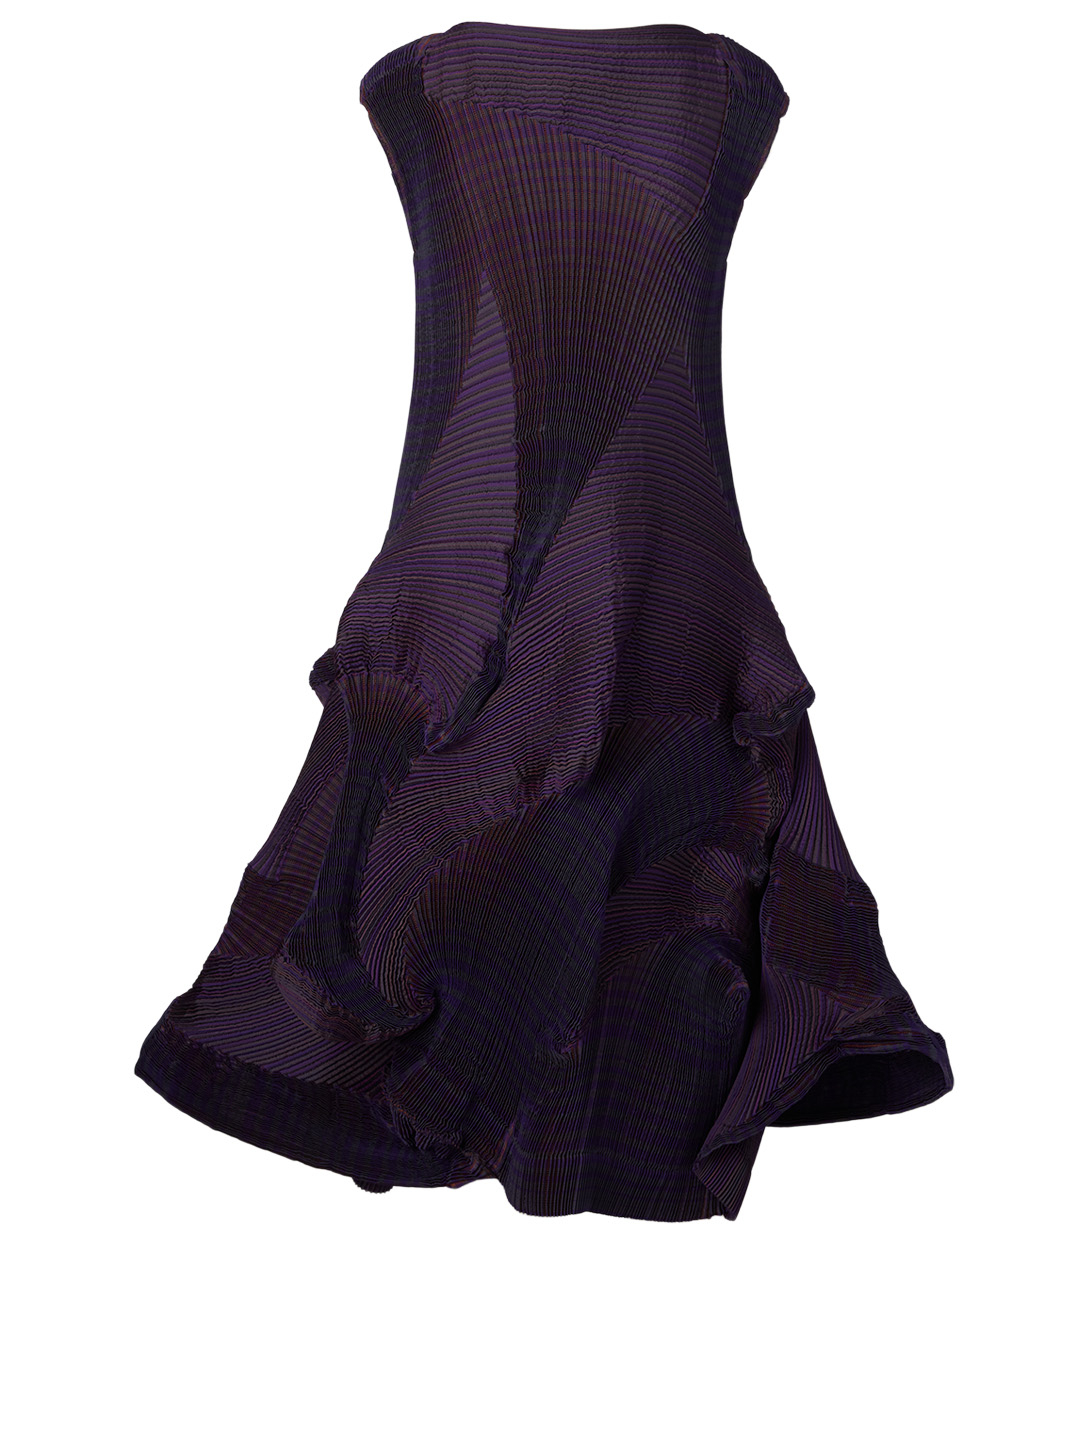 ISSEY MIYAKE Corona Sleeveless Dress Women's Purple